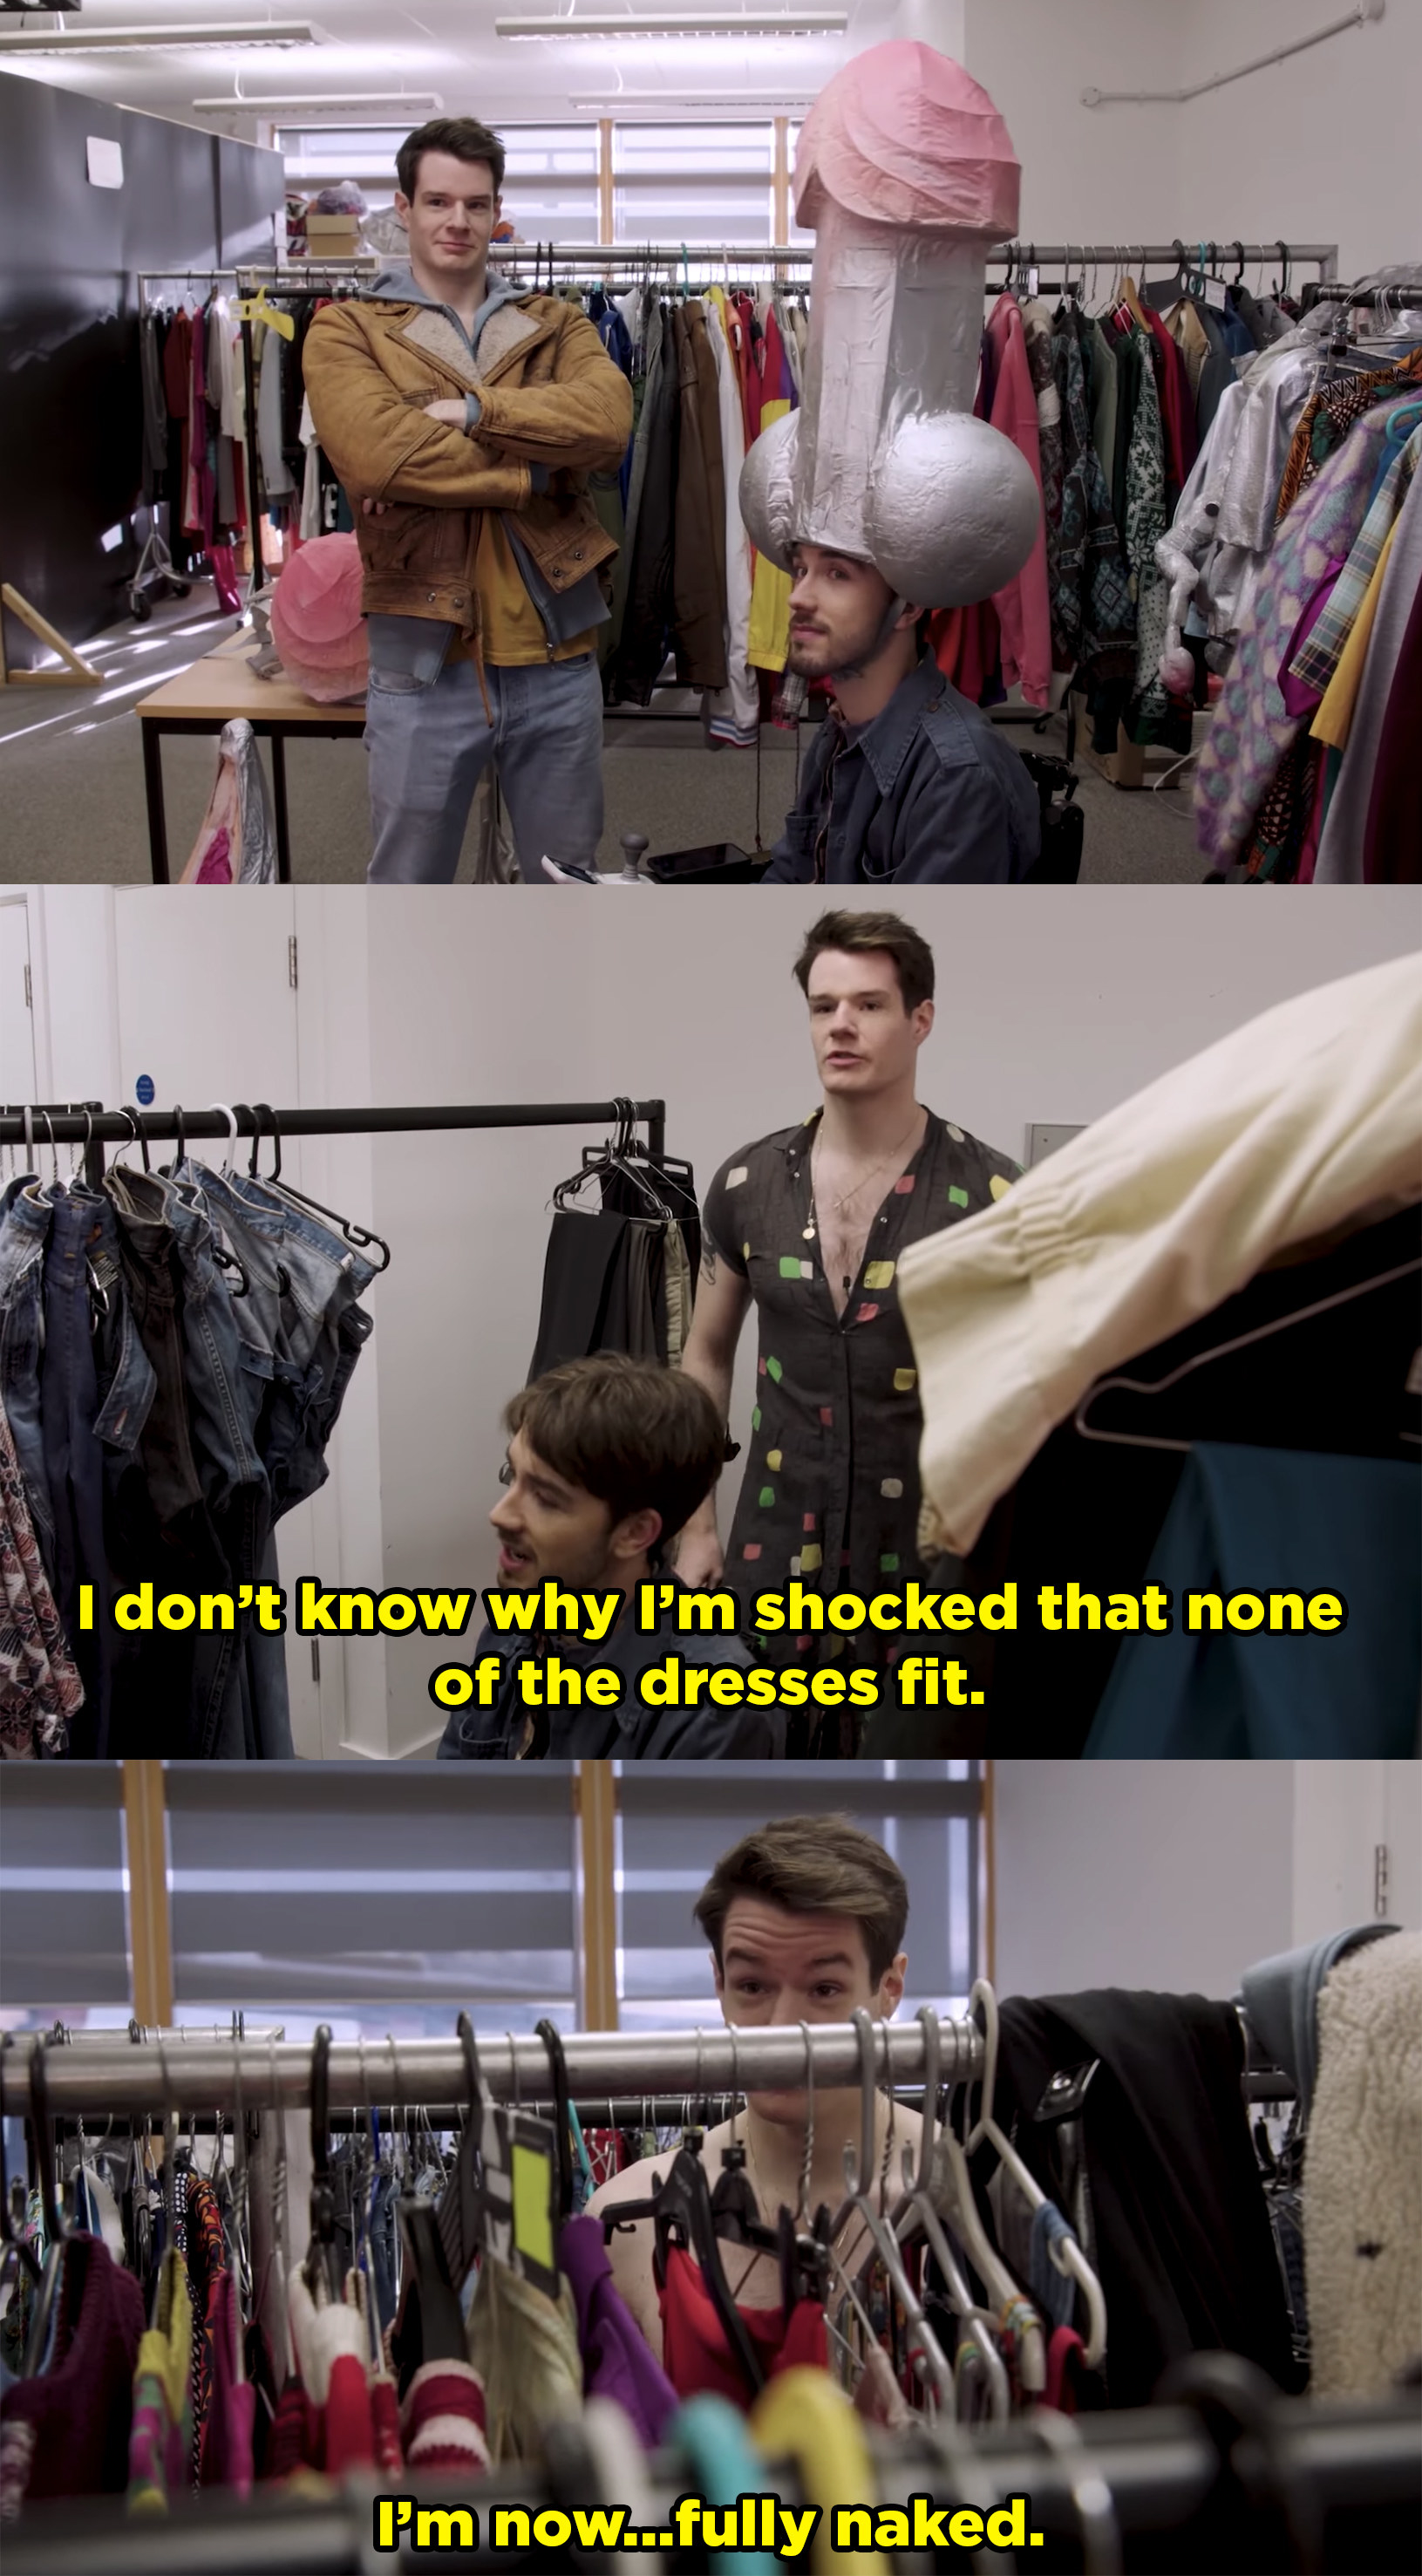 George sits with a giant paper-mache penis on his head, then Connor tries on all the dresses. And when none of them fit, he gets fully naked behind the costume racks.